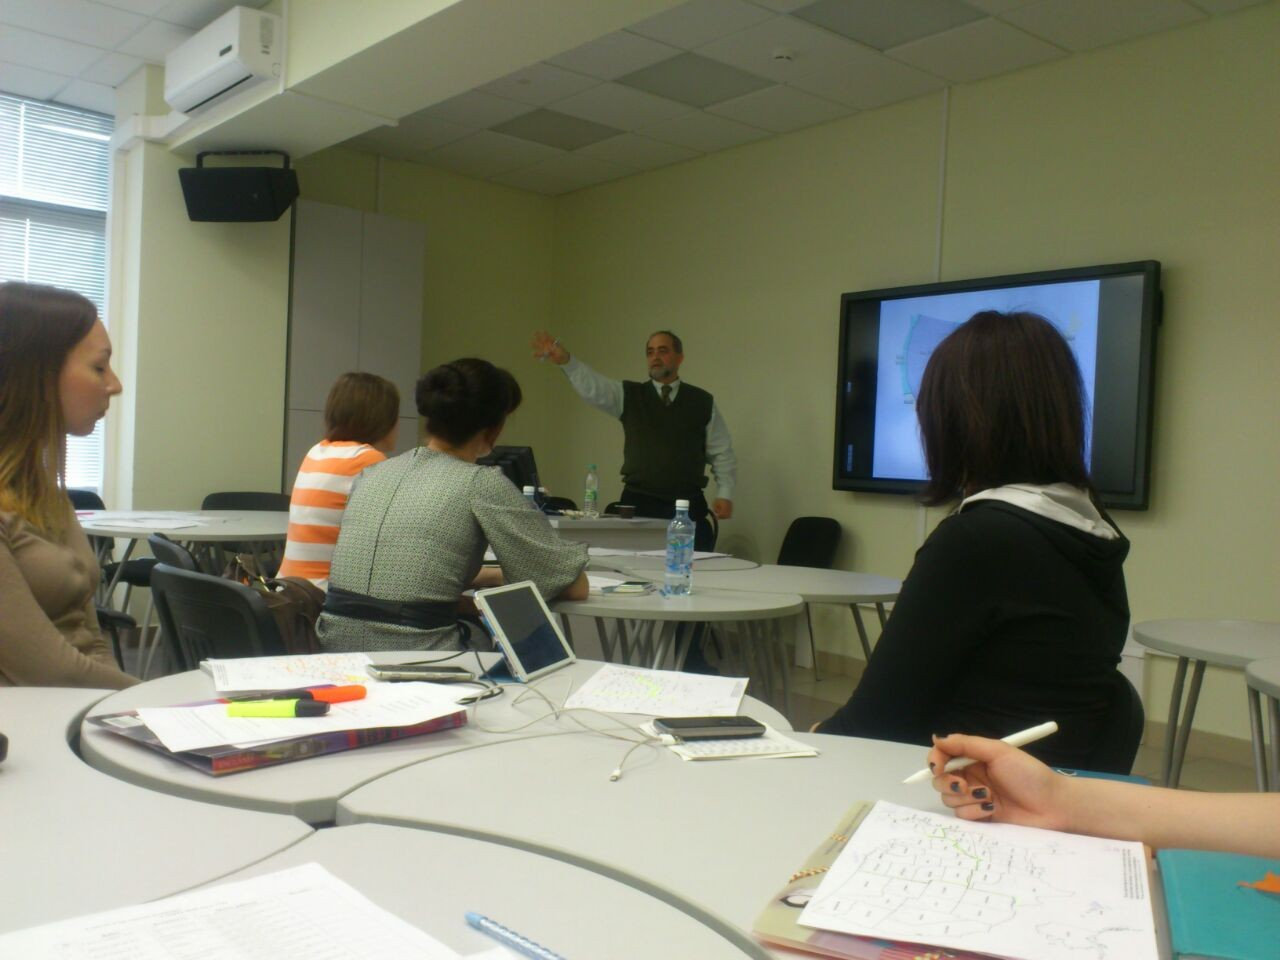 The course 'Immersion into English' with Paul Spitzer, English Language Fellow based in Kazan